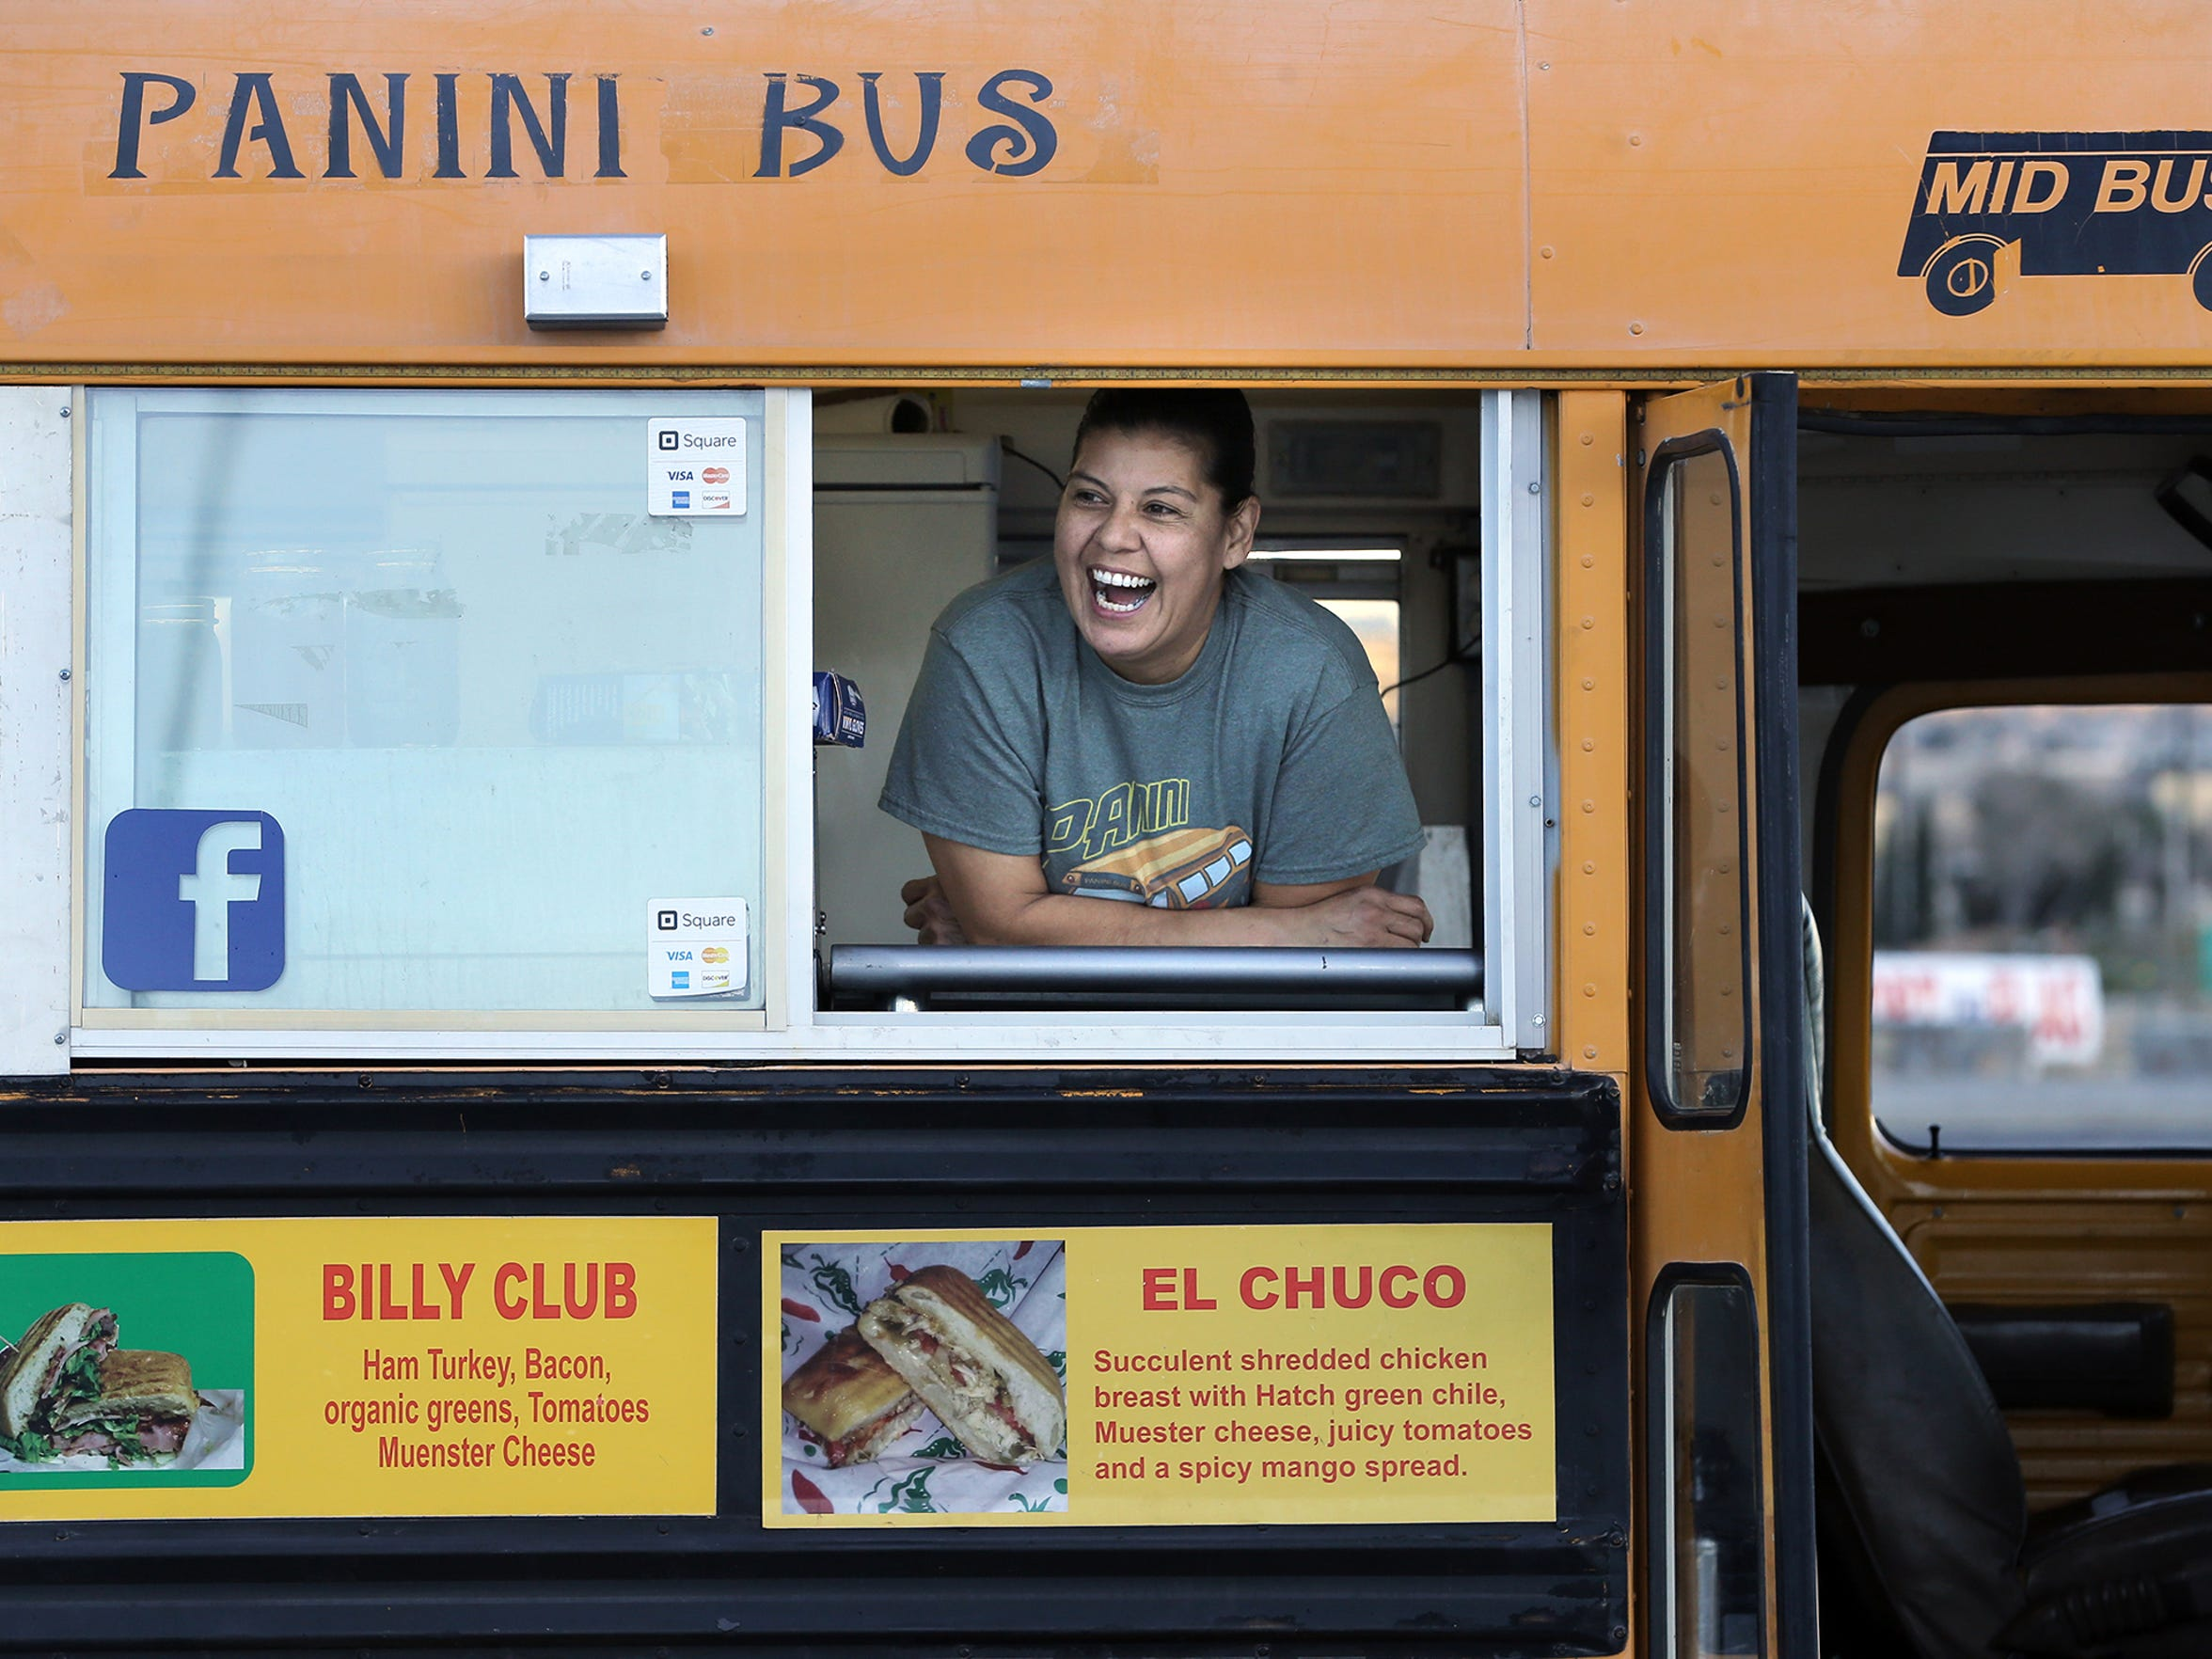 Panini Bus owner Cynthia Bertoldo jokes with customers from the window of her food truck on a Thursday night at the Old Glory Memorial in northeast El Paso.